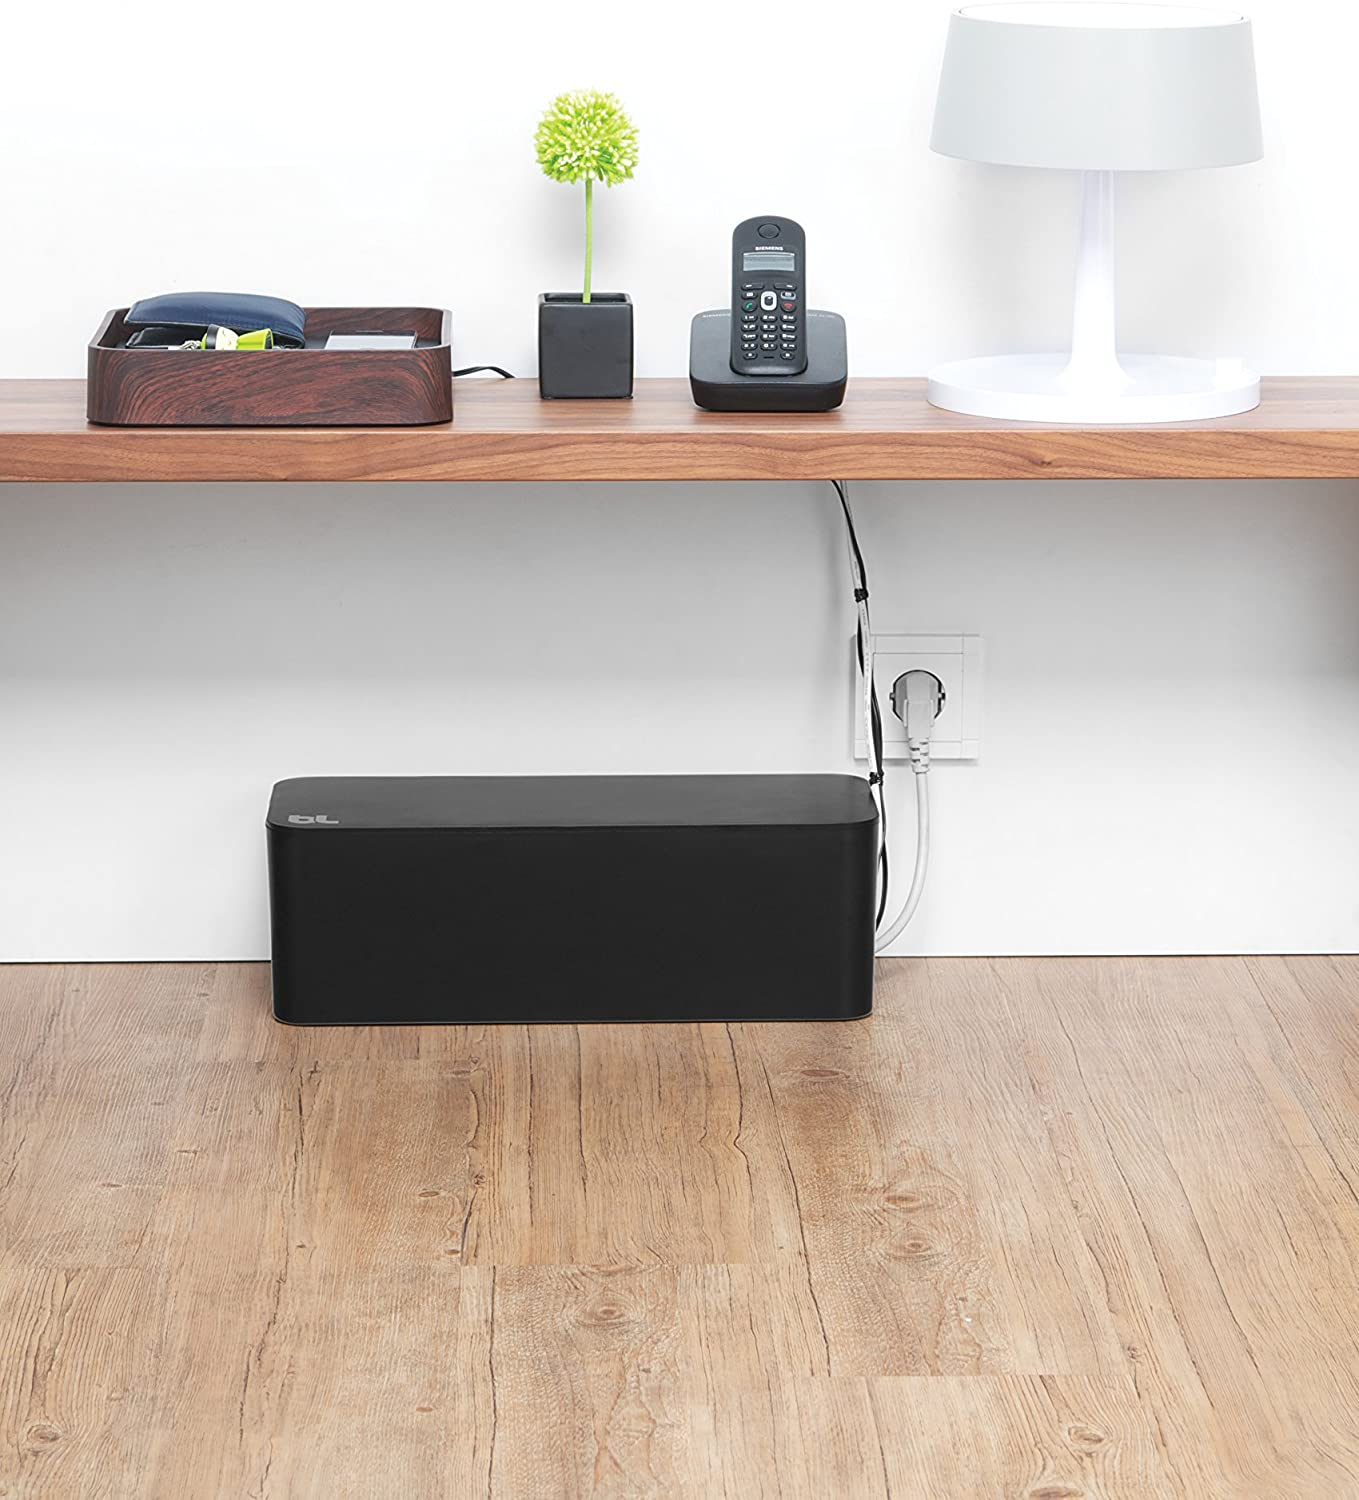 Bluelounge CableBox Cable and Cord Management System